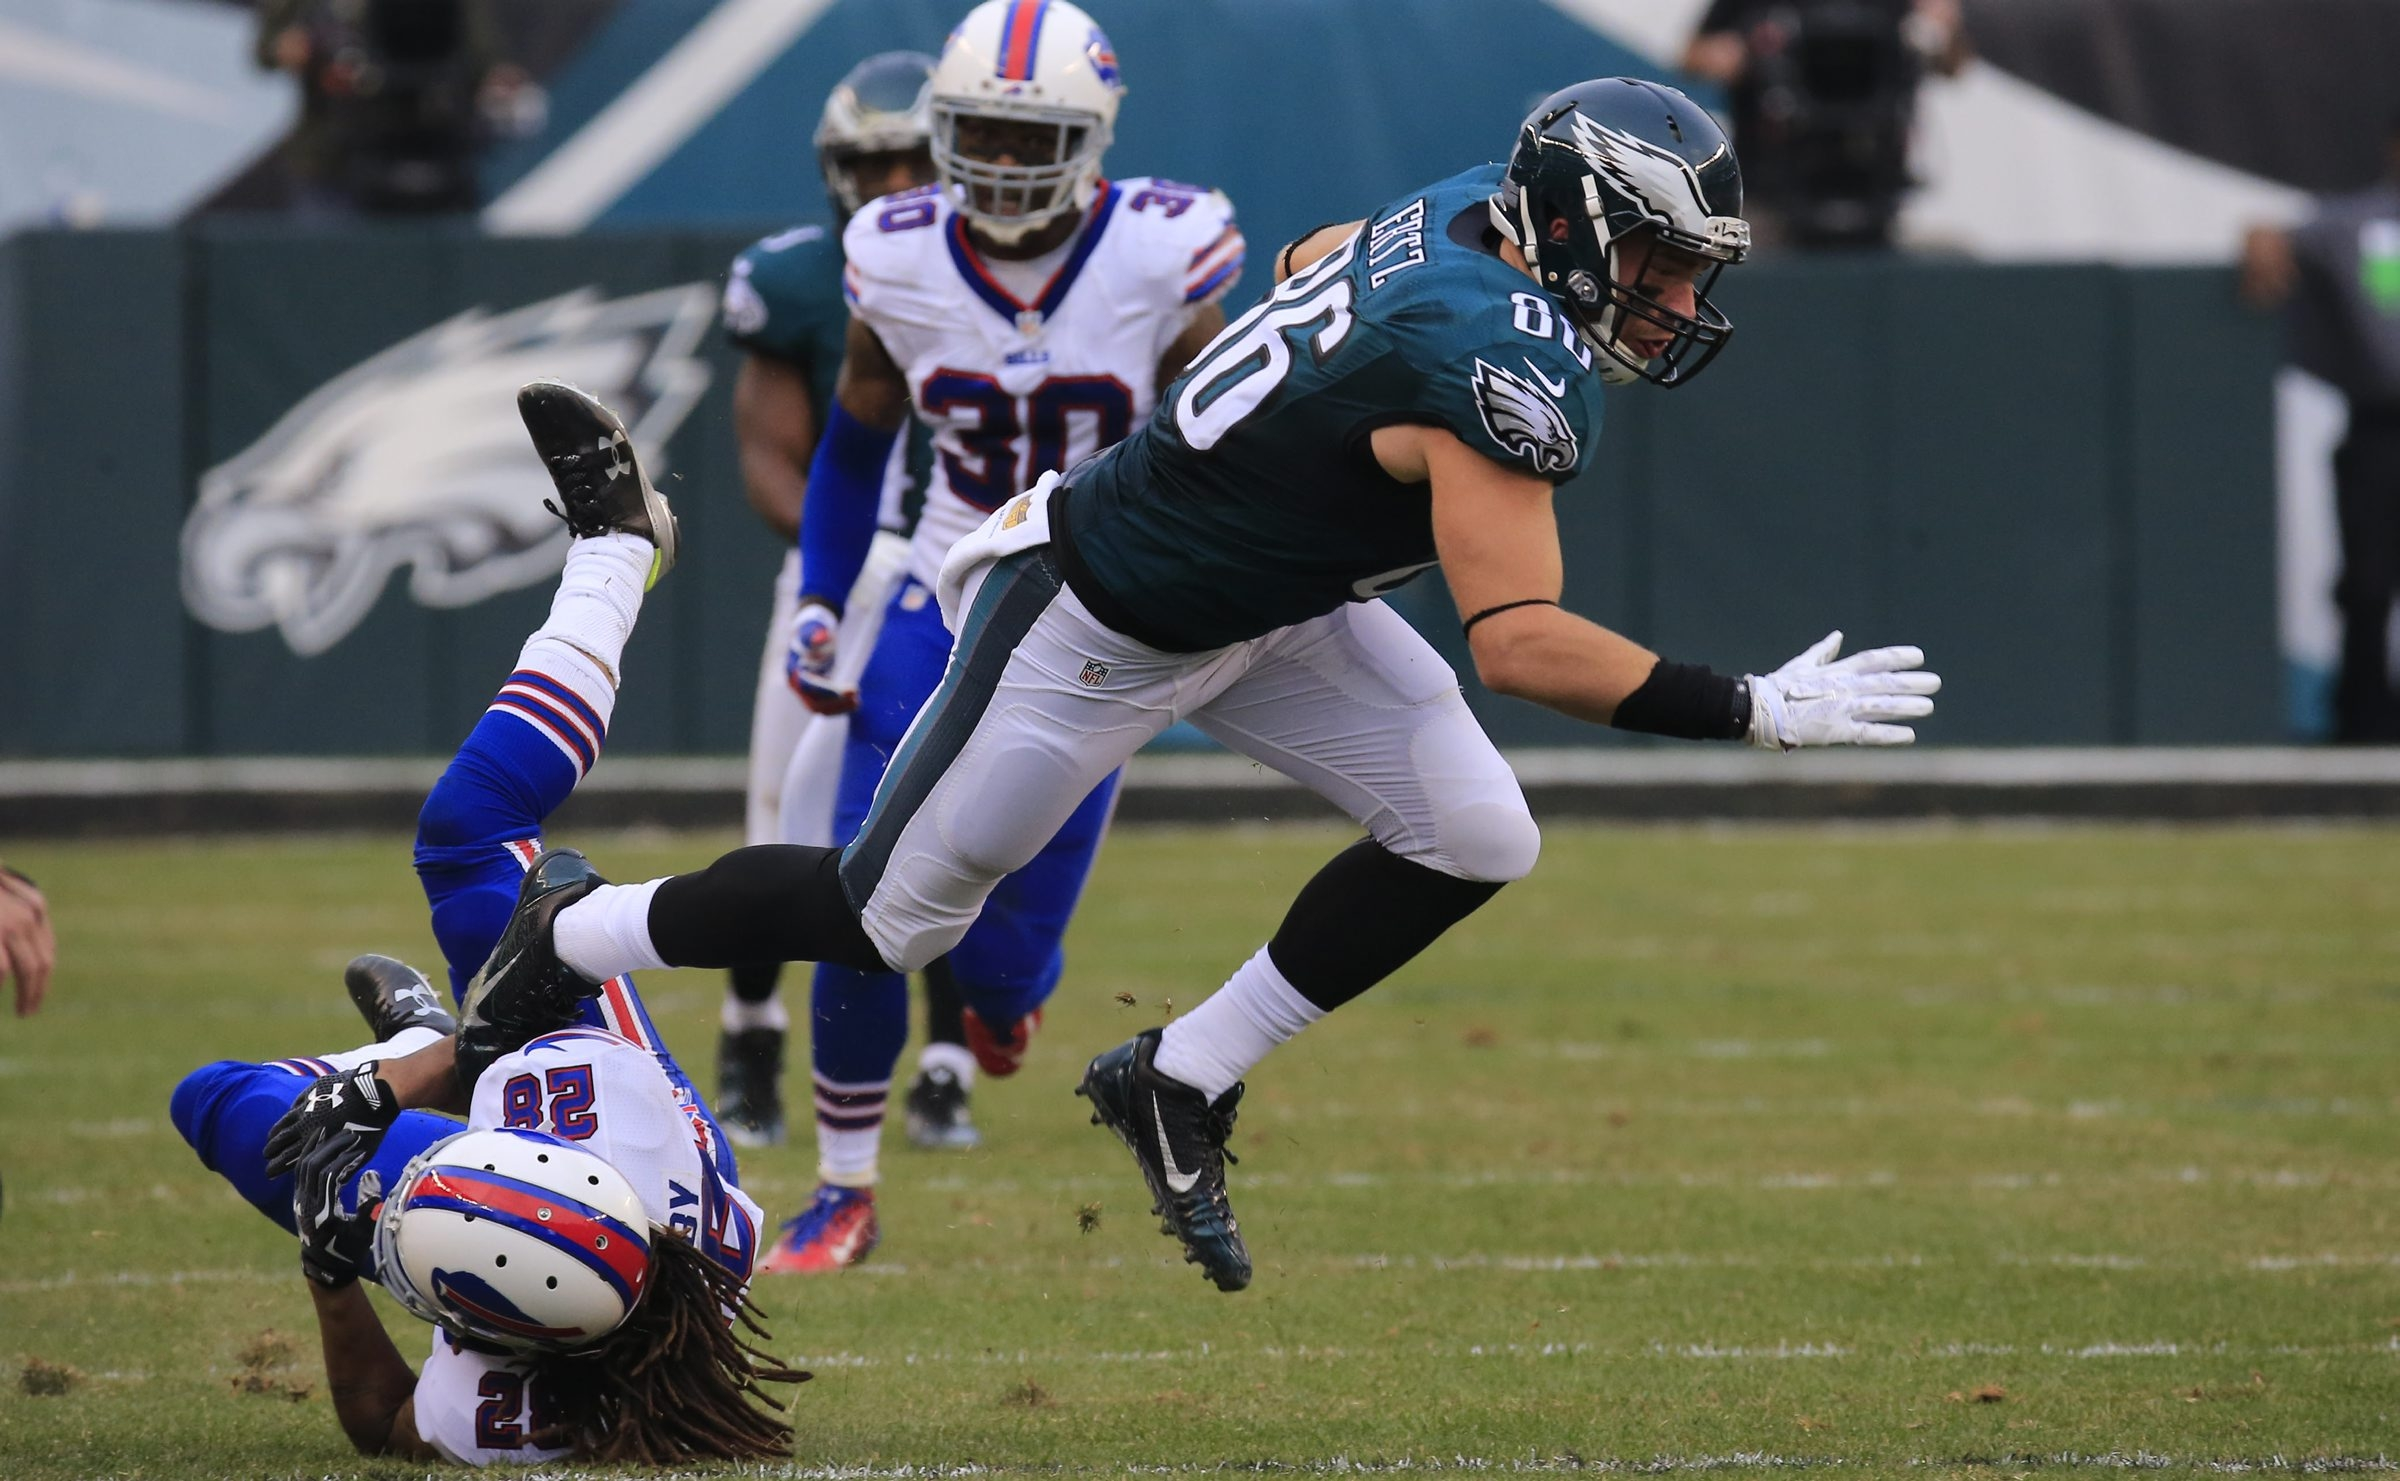 Zach Ertz of the Eagles pulls away from a fallen Bills cornerback Ronald Darby on a 41-yard pass play that set up the Eagles' winning field goal in the fourth quarter.